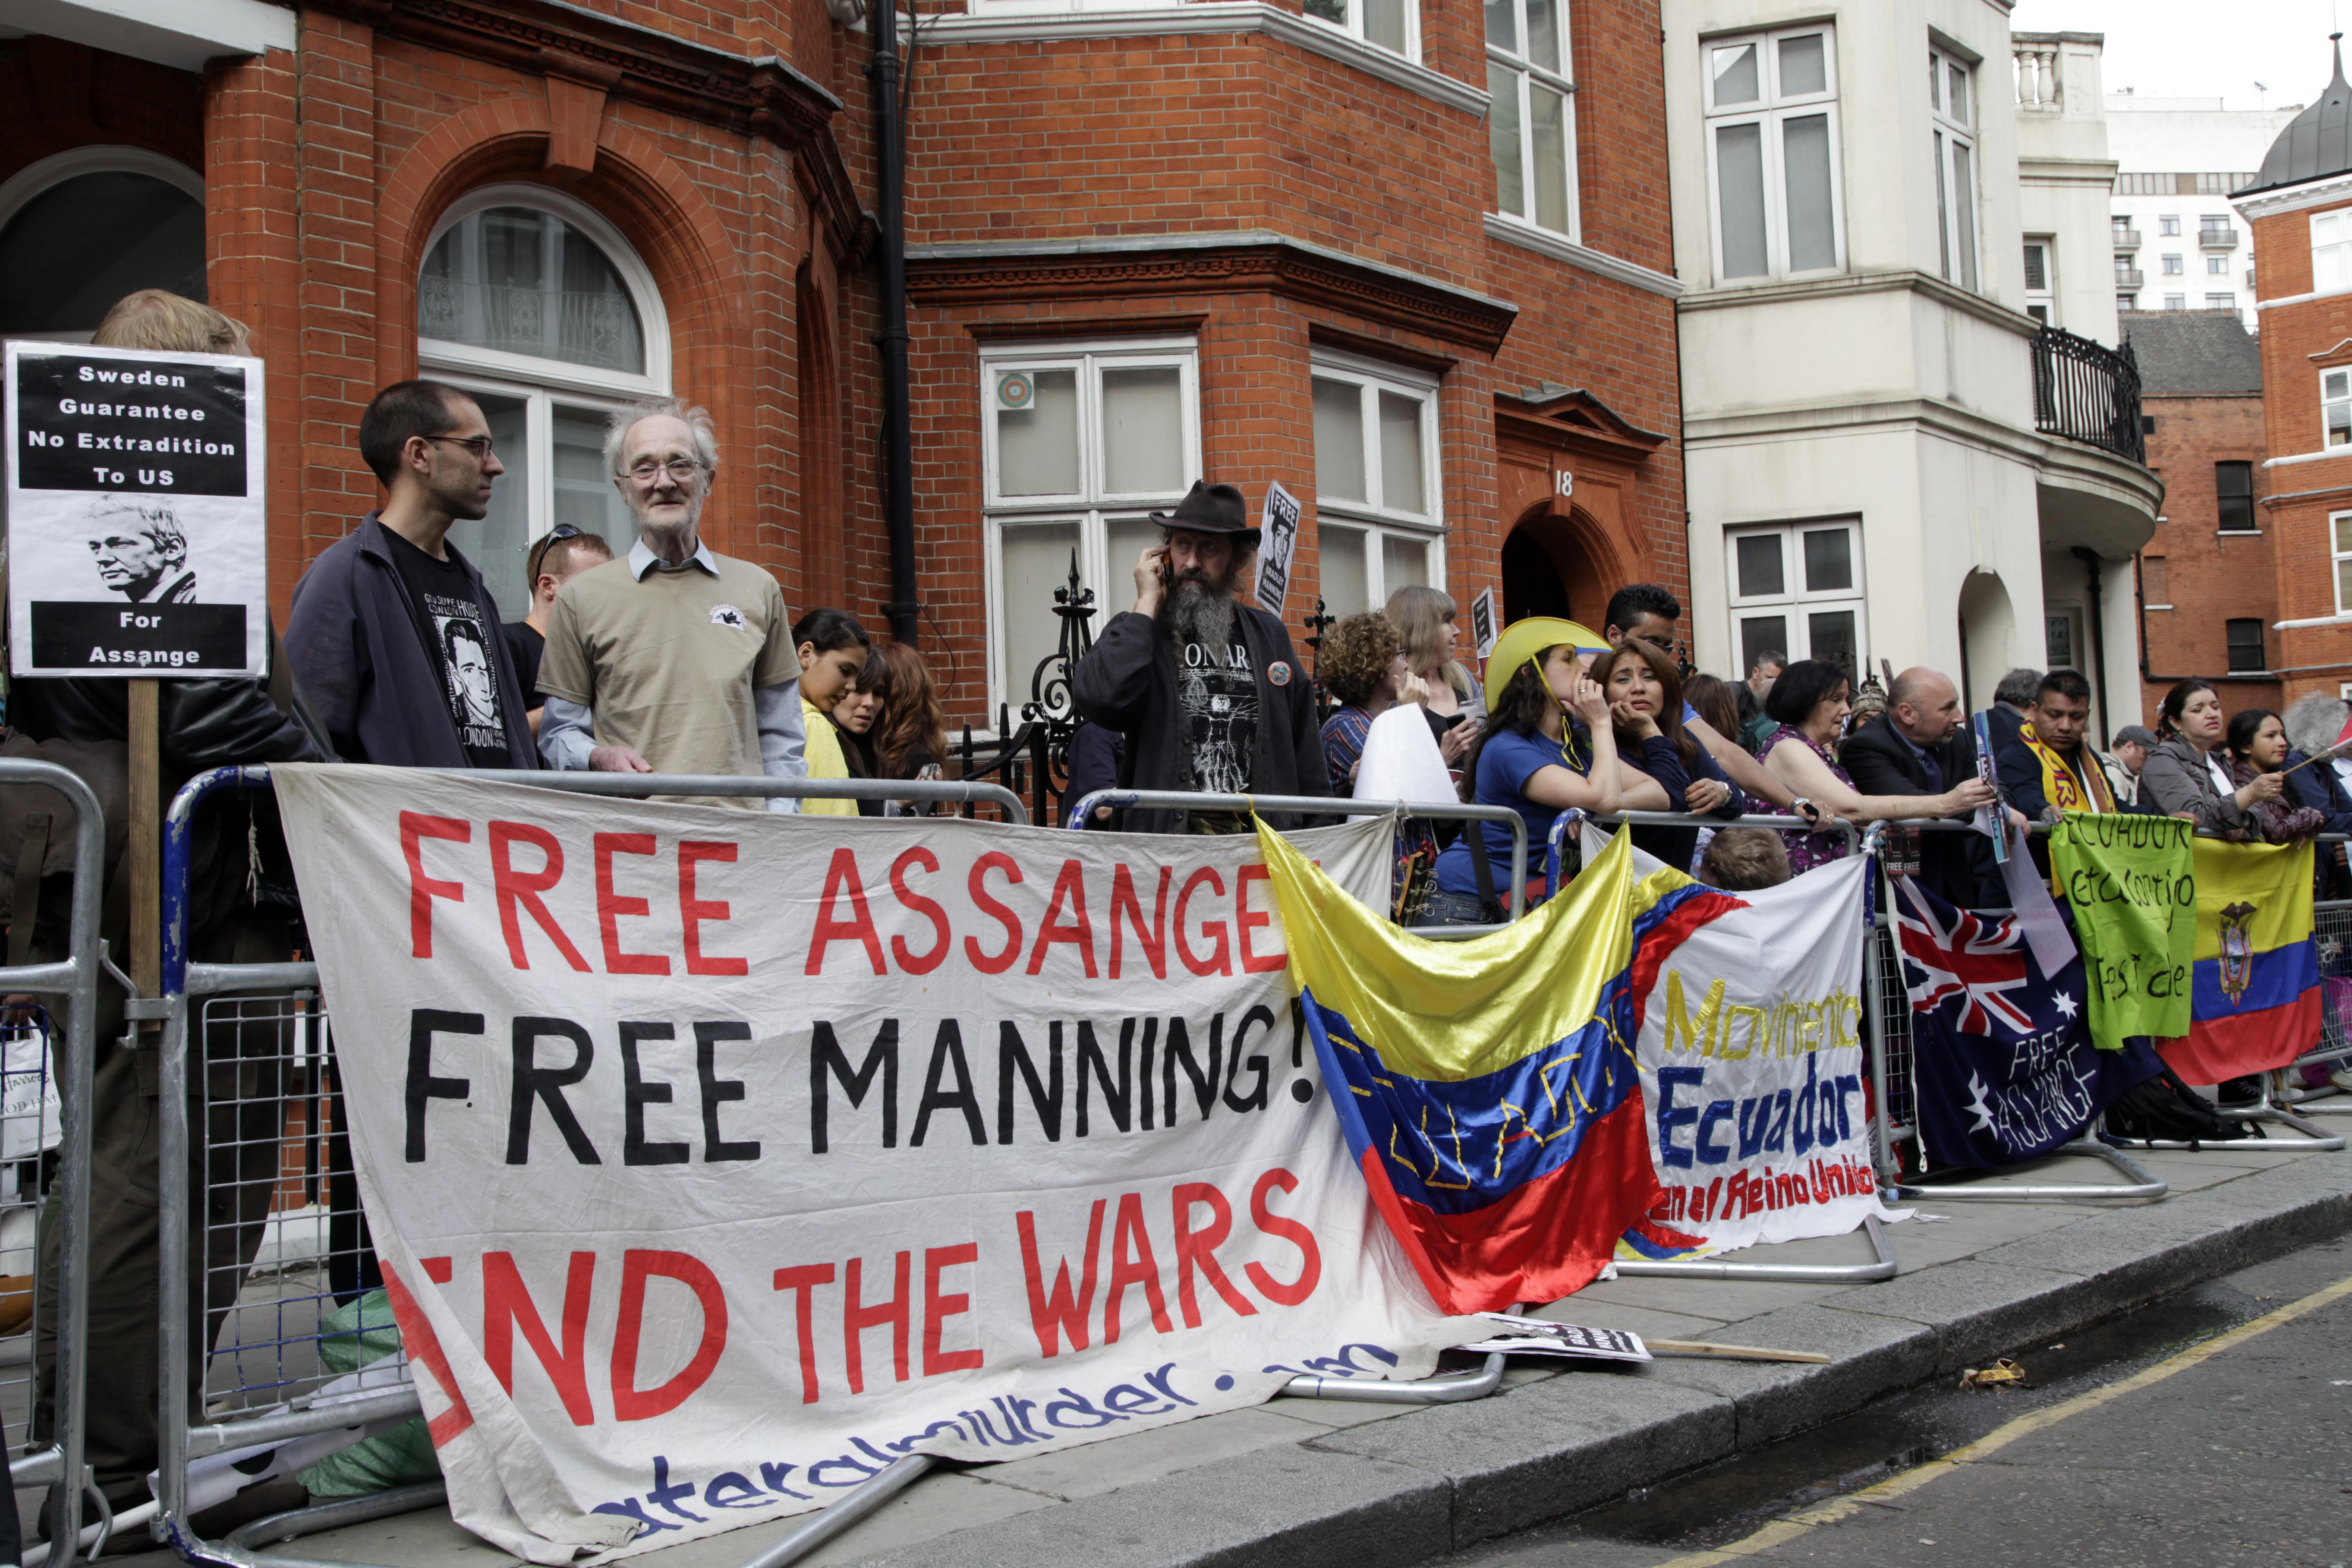 Assange supporters outside embassy, June 16, 2013, London. (Wikimedia Commons)